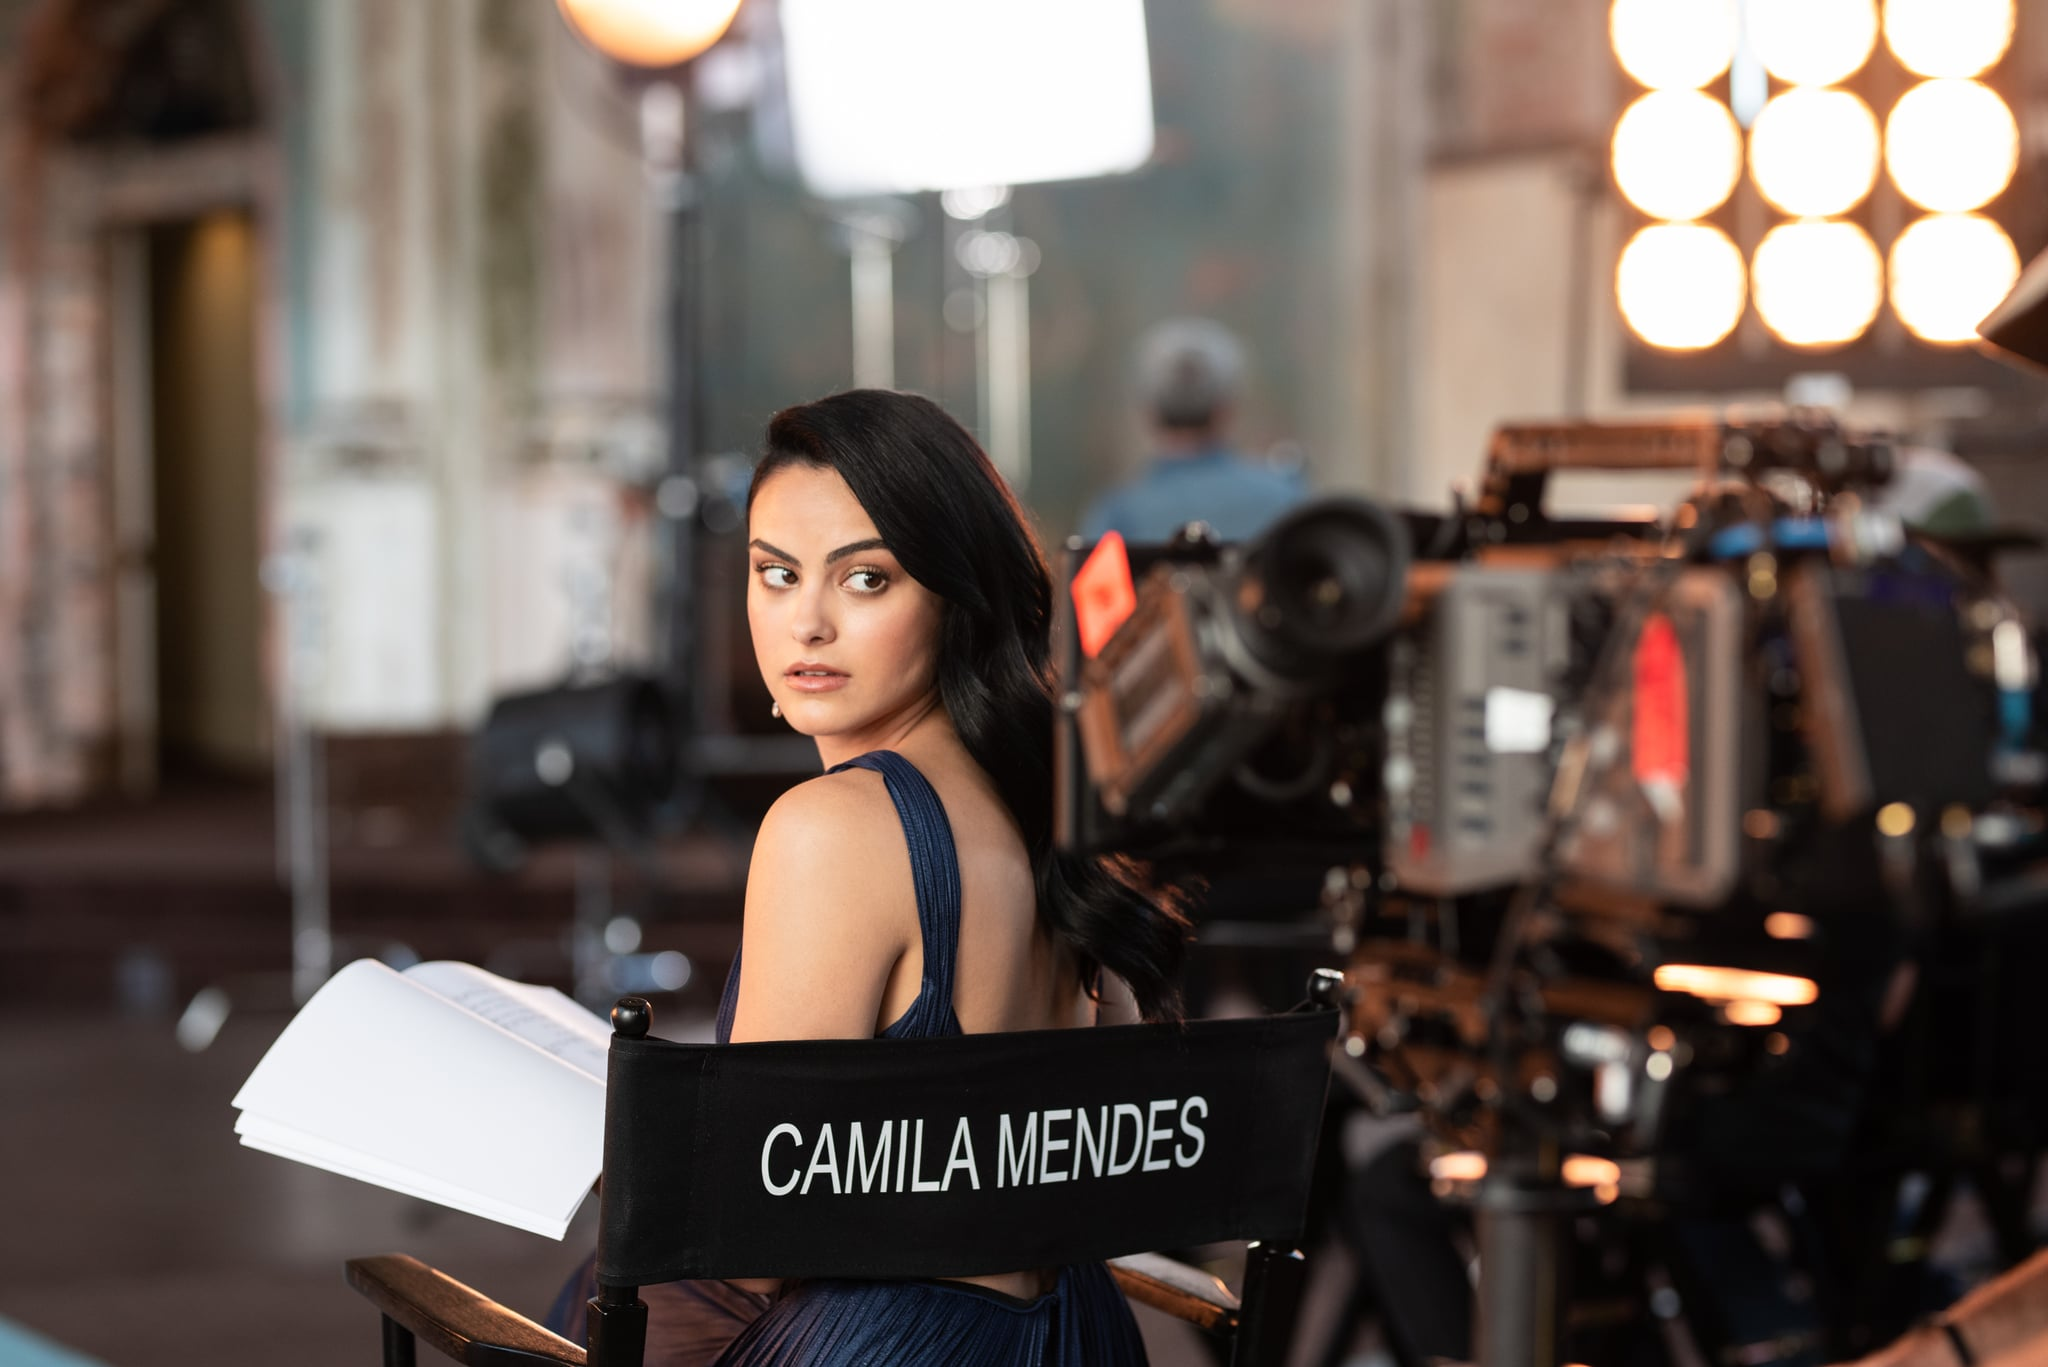 If Hollywood Won't Create Content For the Latinx Community, Camila Mendes Will Do It Herself